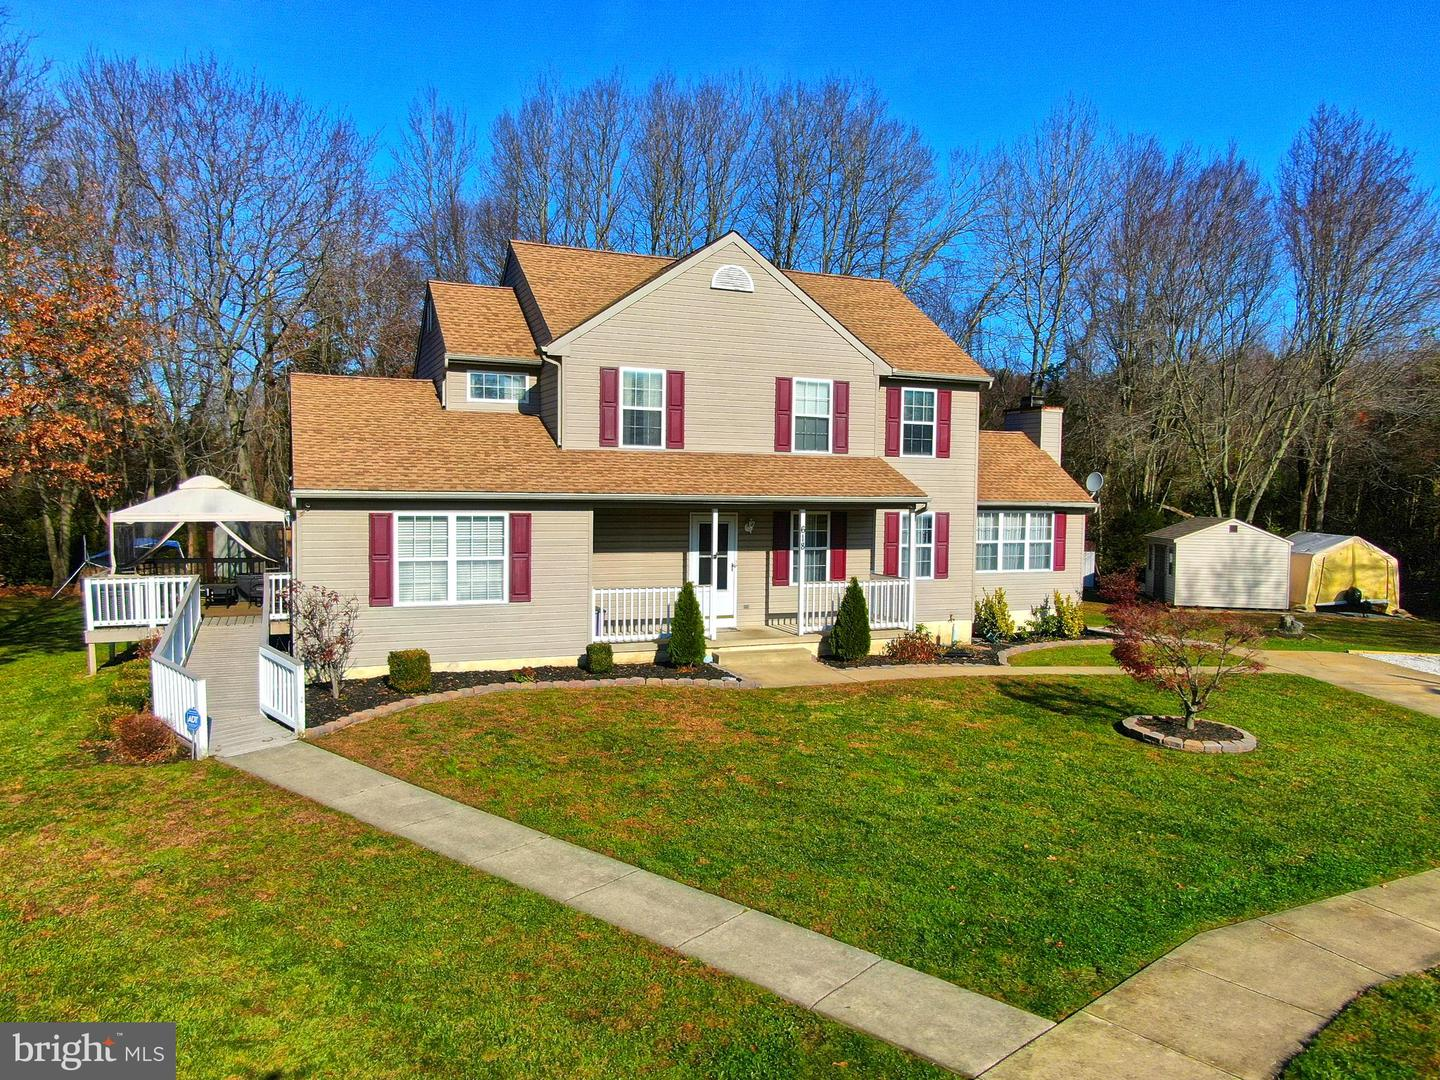 618 BISMARCK CT, MANTUA, NJ 08051